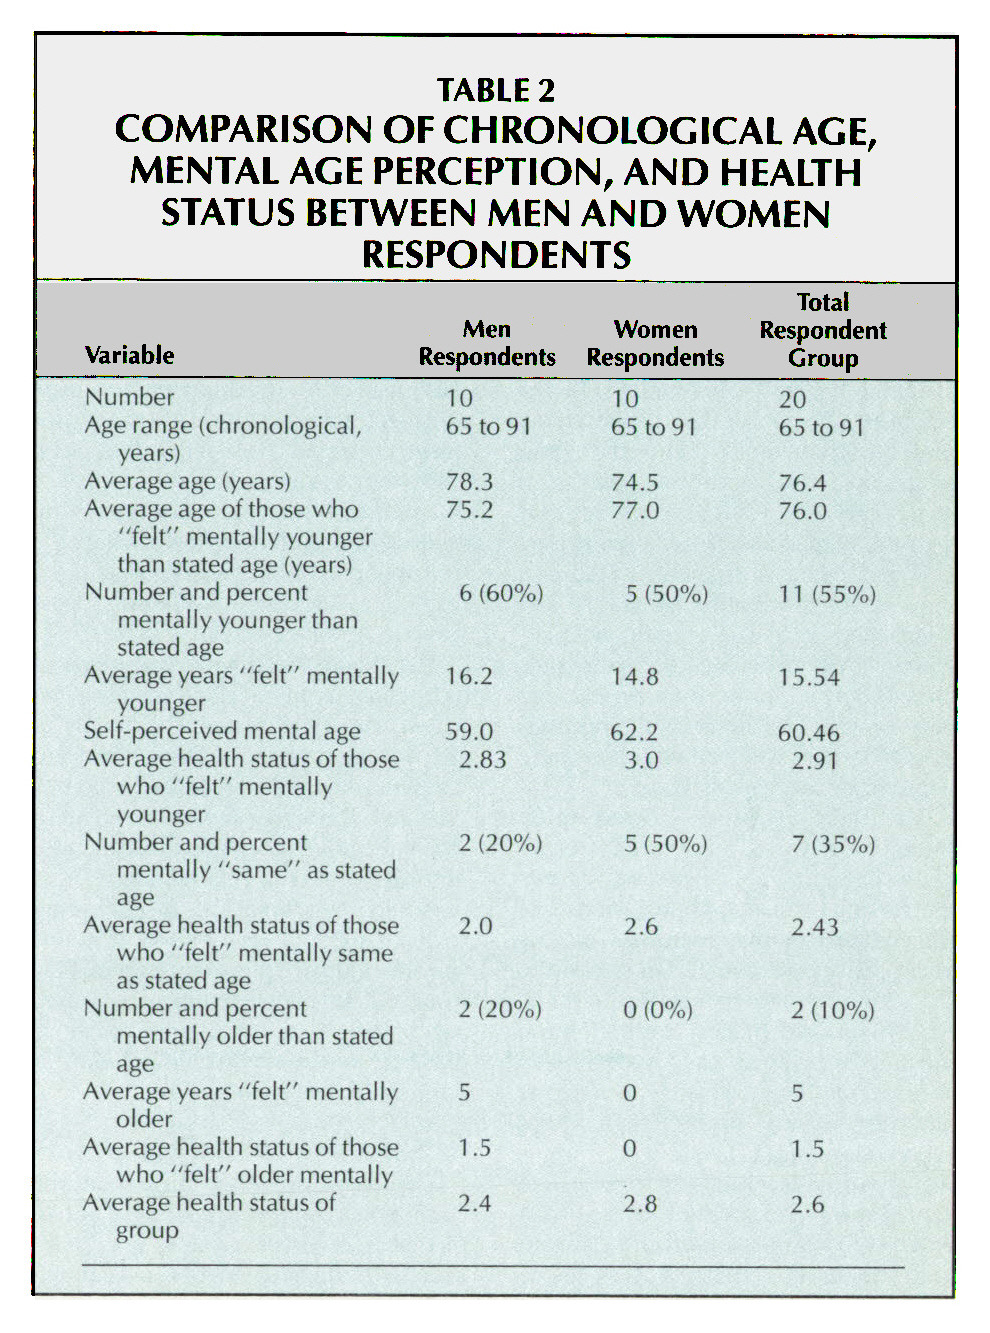 TABLE 2COMPARISON OF CHRONOLOGICAL AGE, MENTAL AGE PERCEPTION, AND HEALTH STATUS BETWEEN MEN AND WOMEN RESPONDENTS